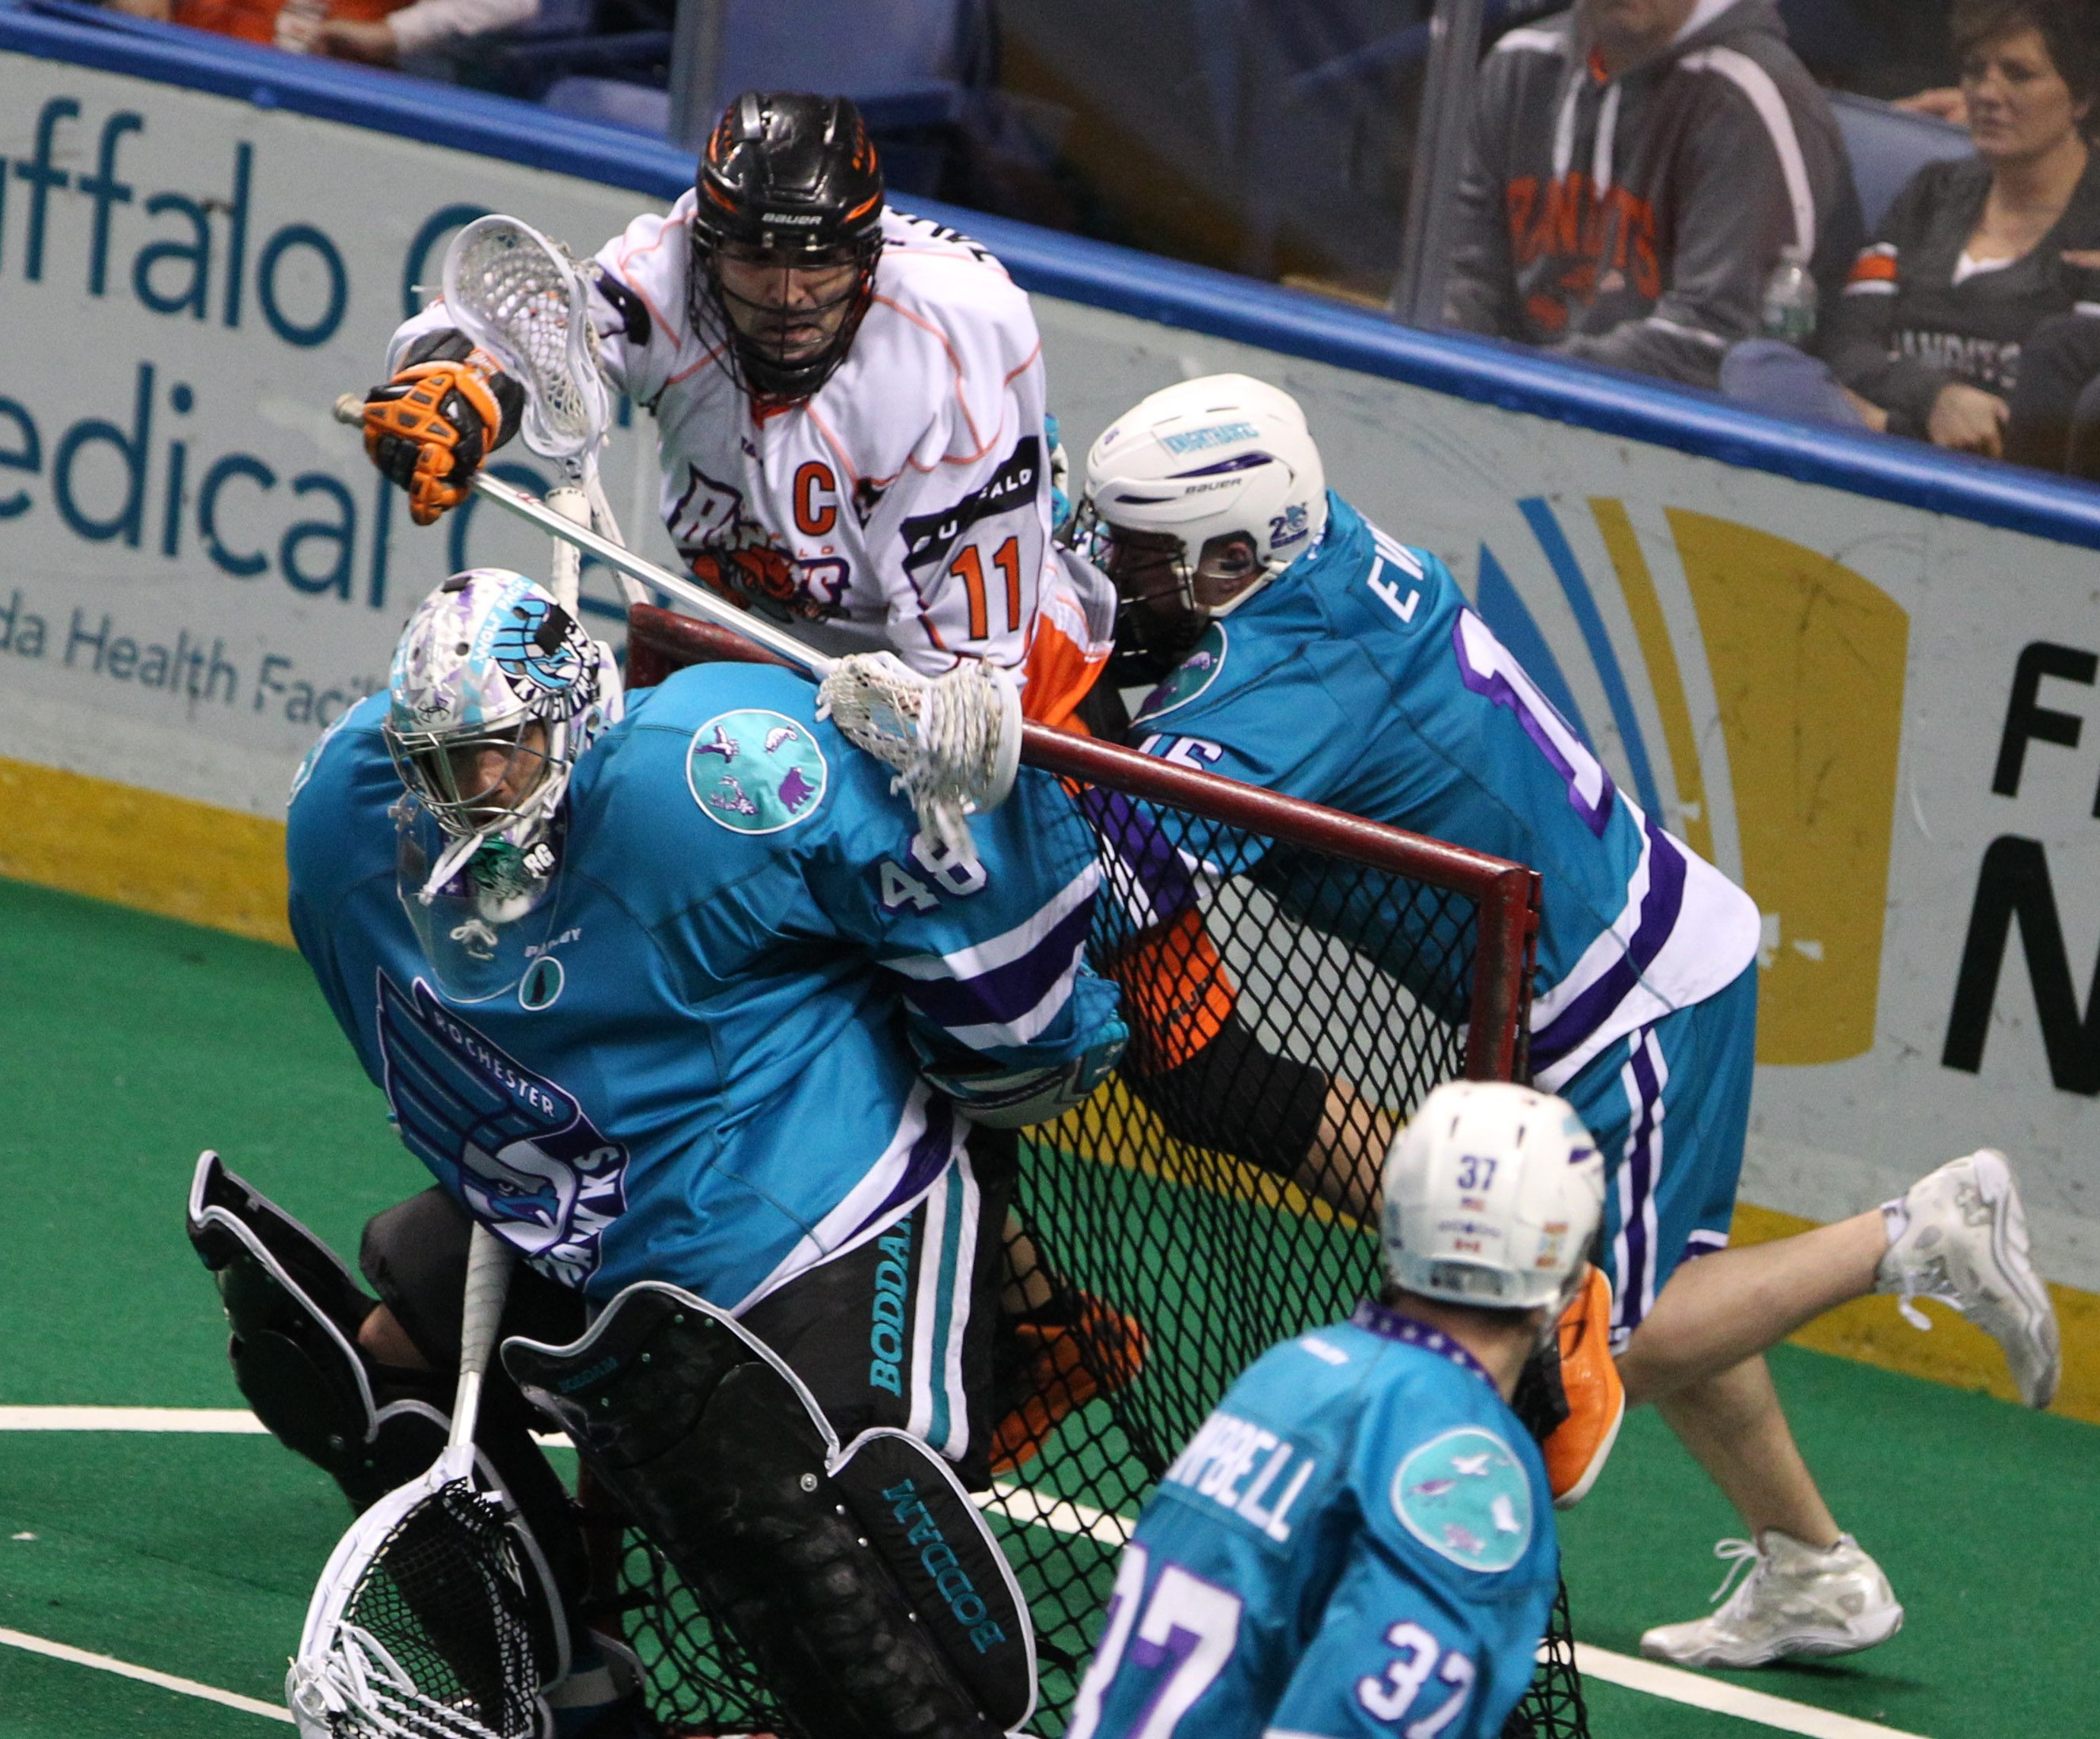 Bandits' John Tavares scores over the net with a shot in the second quarter. The same two teams meet in Rochester next Saturday.